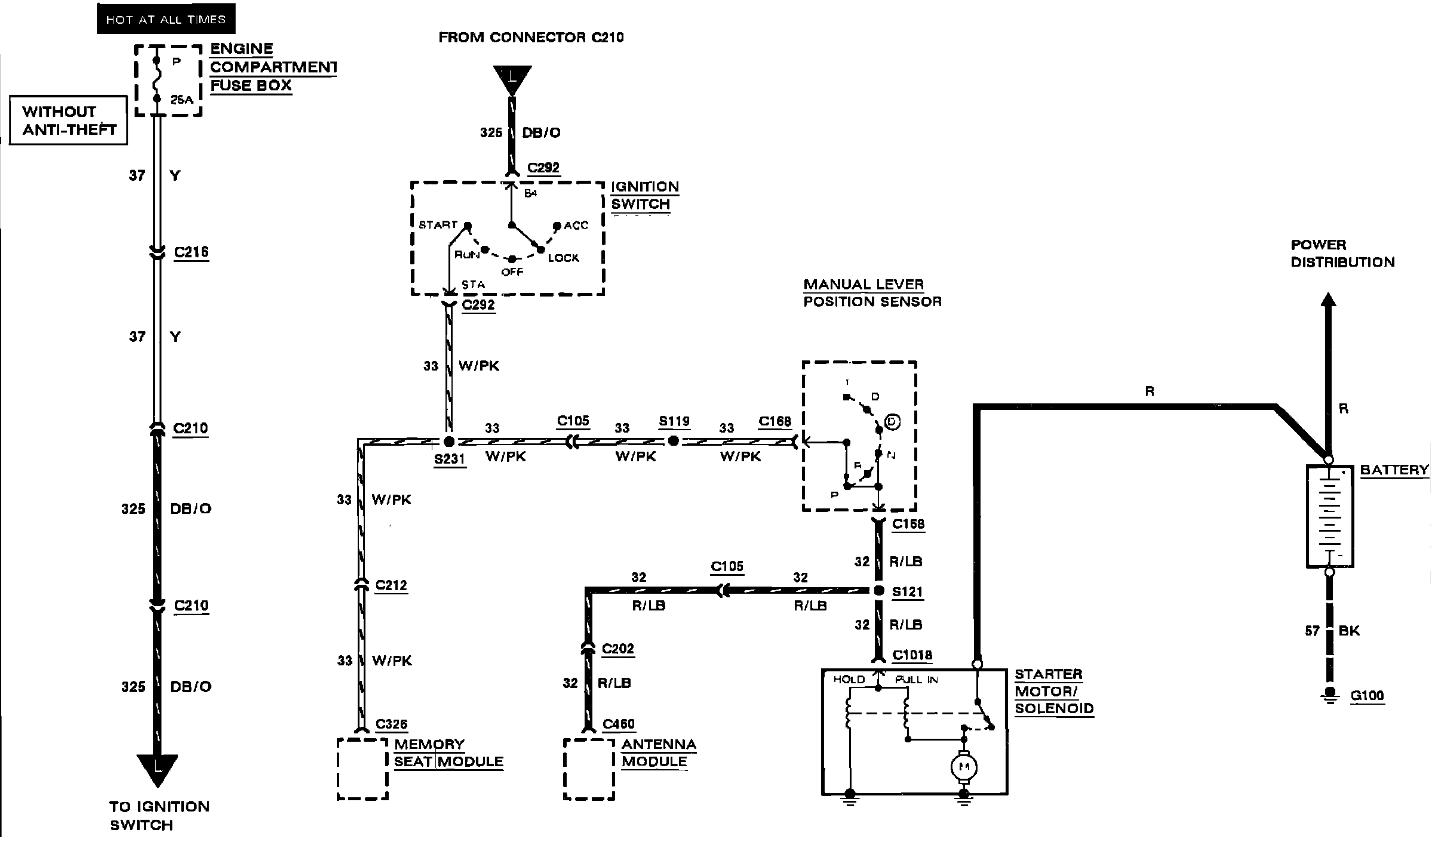 Index of /lincoln/pictures10 on car starter battery, car starting problems diagrams, small engine carburetor diagrams, car wire harness diagrams, delta transformers diagrams, car starter motor diagram, car water pump diagram, car battery diagrams, car steering diagrams, ford fuel system diagrams, starting and charging systems diagrams, freight car diagrams, transformer connection diagrams, car electrical diagrams, car exhaust diagrams, power steering system diagrams, car system diagram, car suspension diagrams, car kill switch diagrams, automotive electrical diagrams,